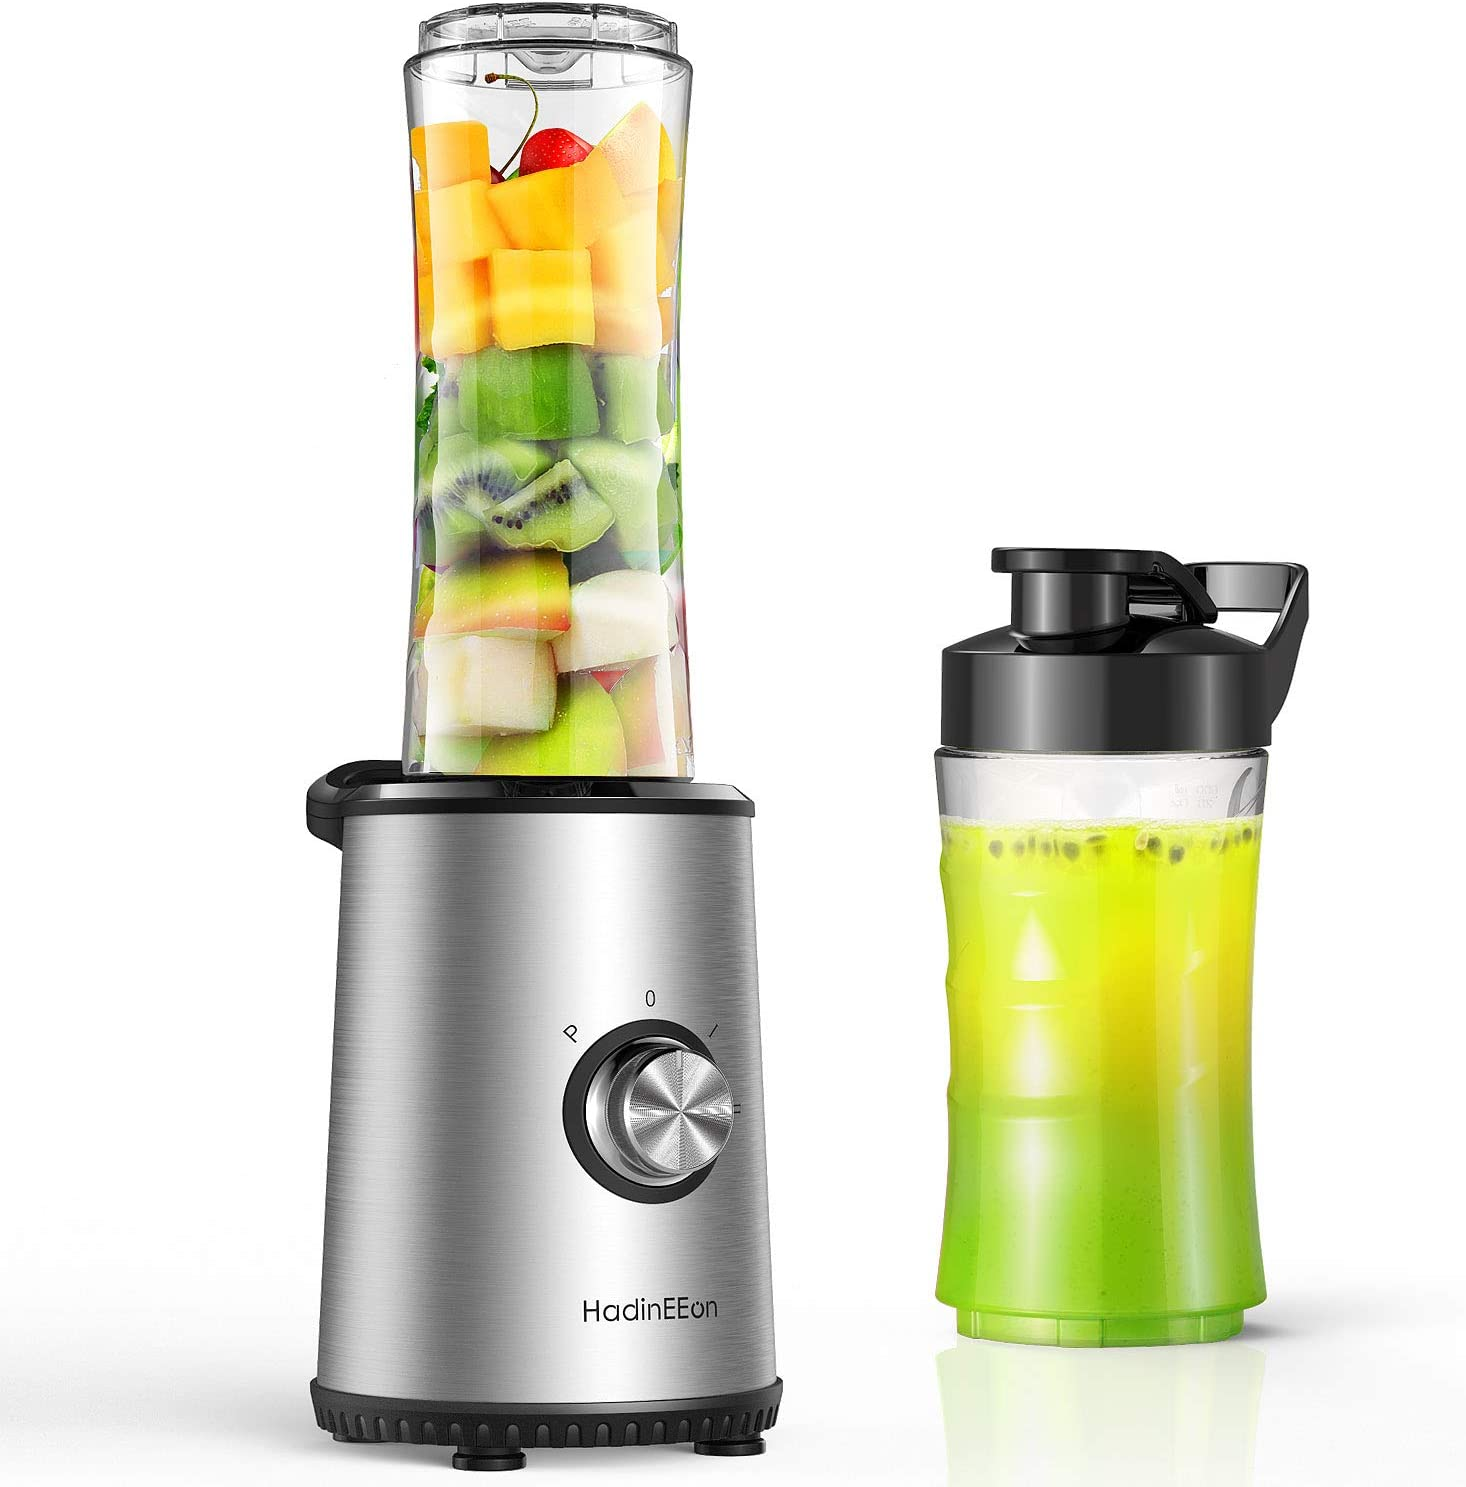 HadinEEon Personal Blender with 3 Optional Modes, Smoothie Blender with 20oz & 10oz BPA-Free Portable Cups, Small Size Blender for Shakes and Smoothies, Silver